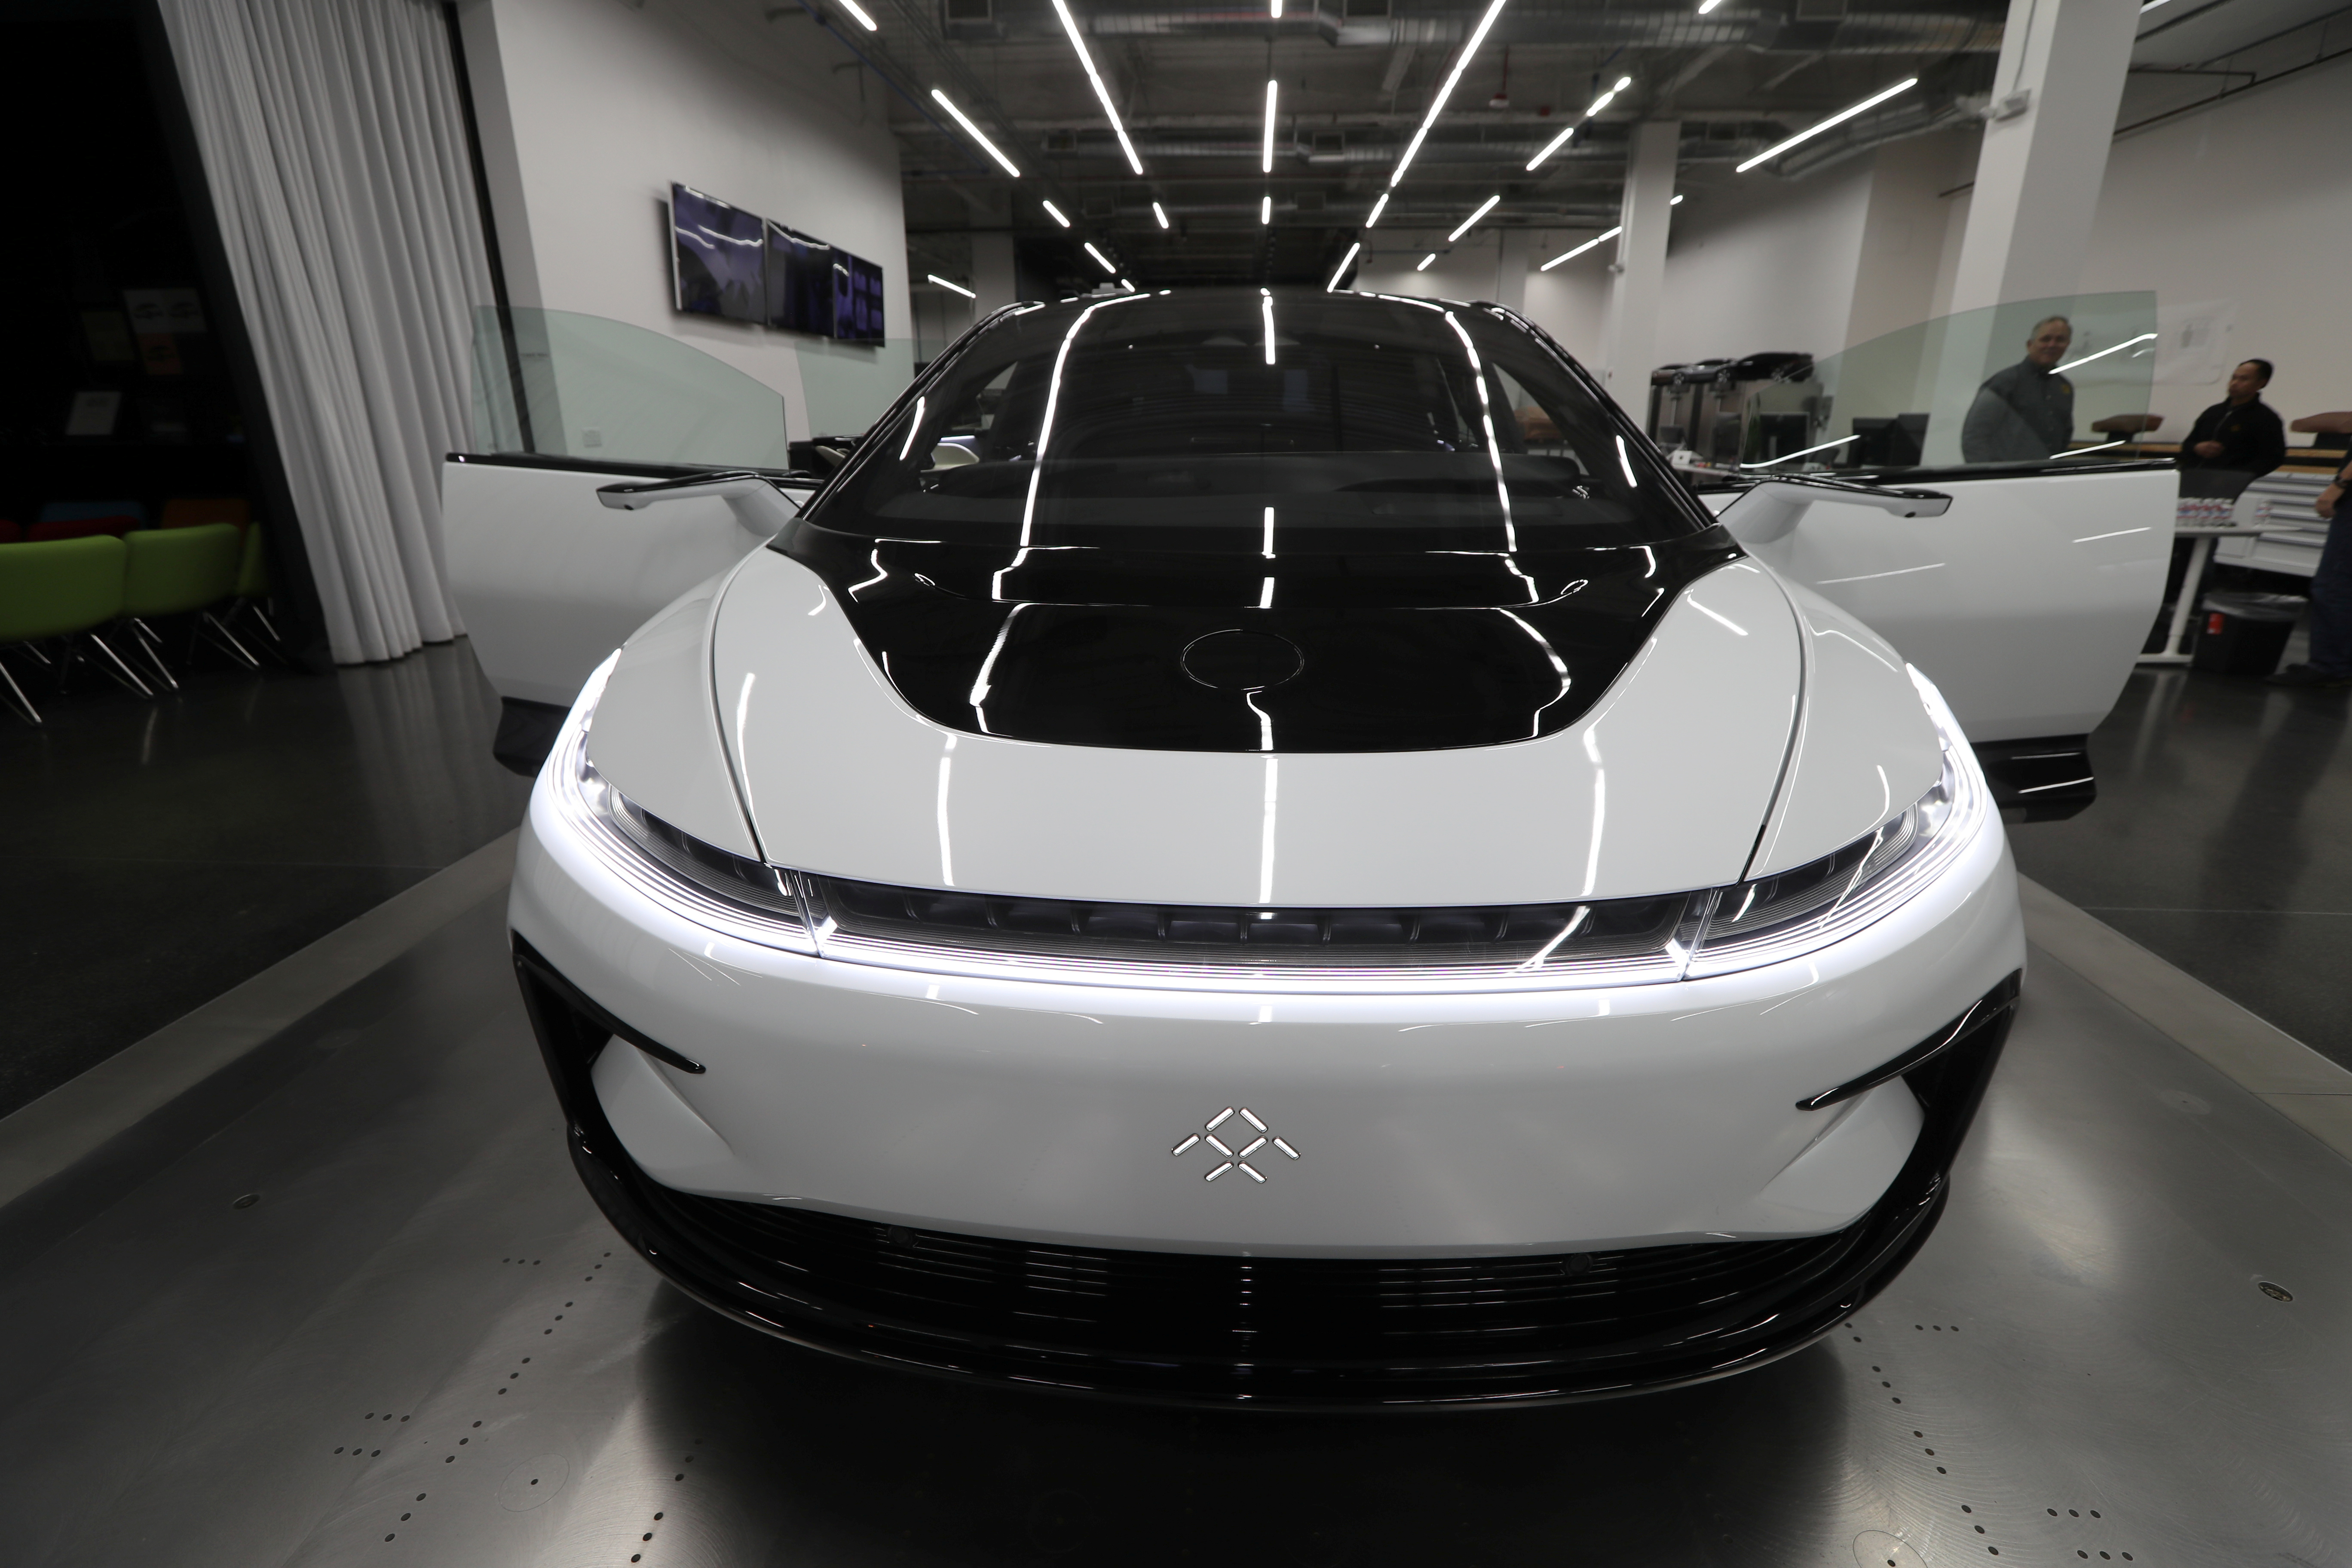 EV firm Faraday Future gearing up to go public in $3.4bn SPAC deal